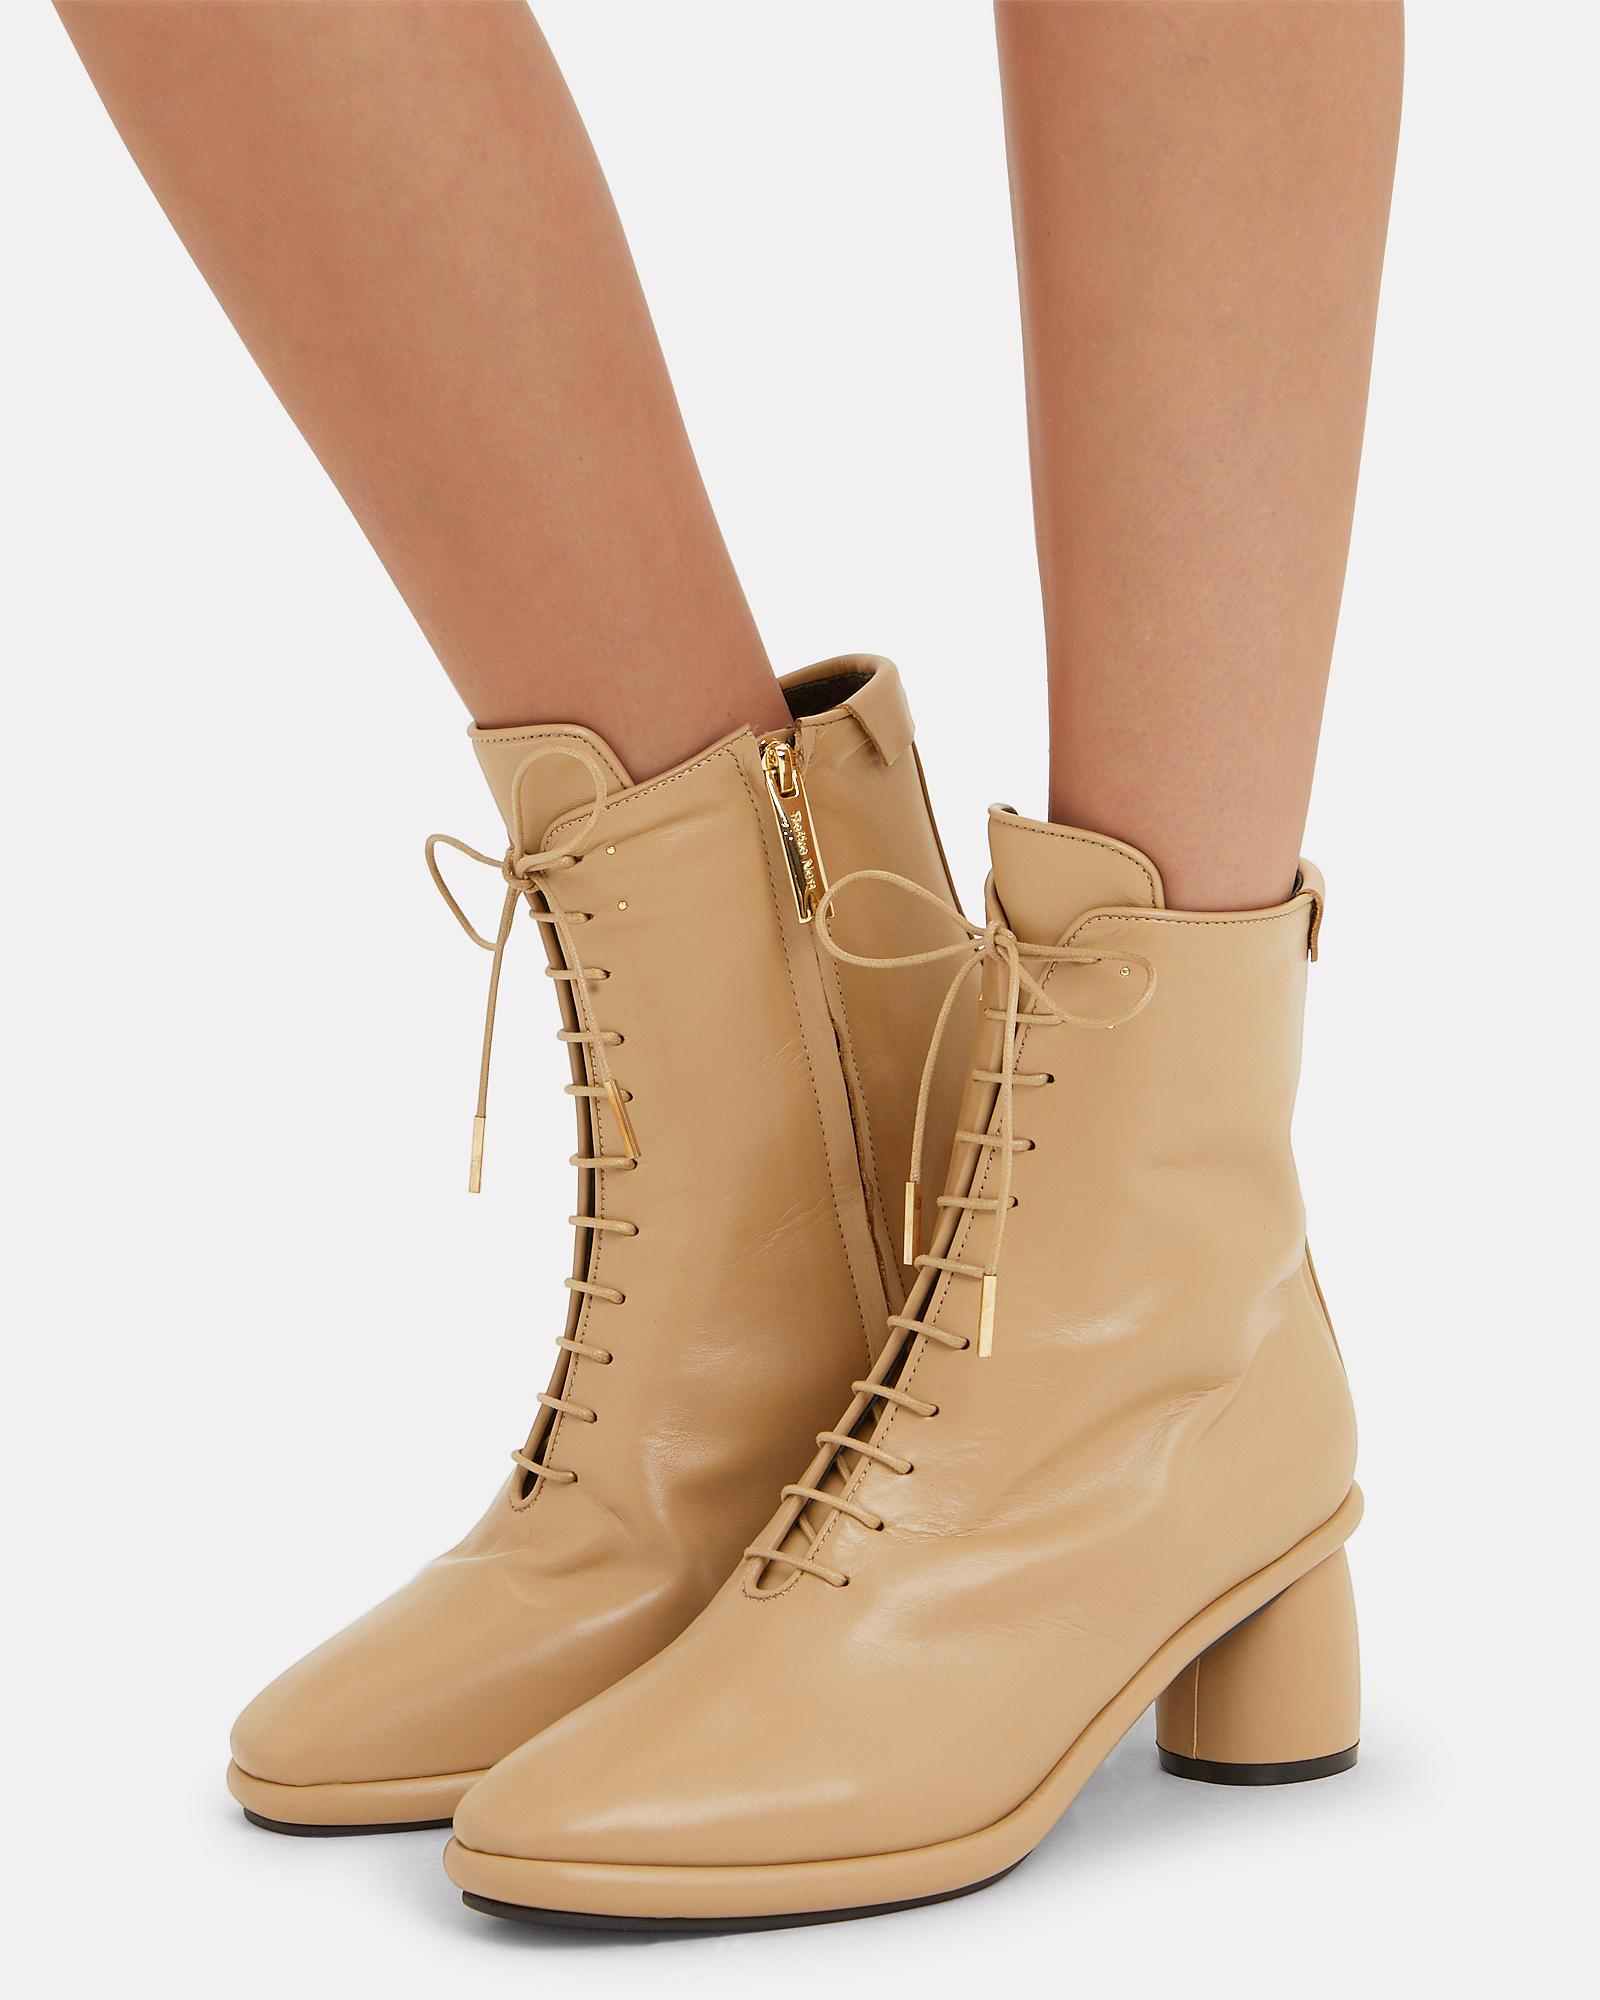 Reike Nen Leather Lace-up Beige Boots